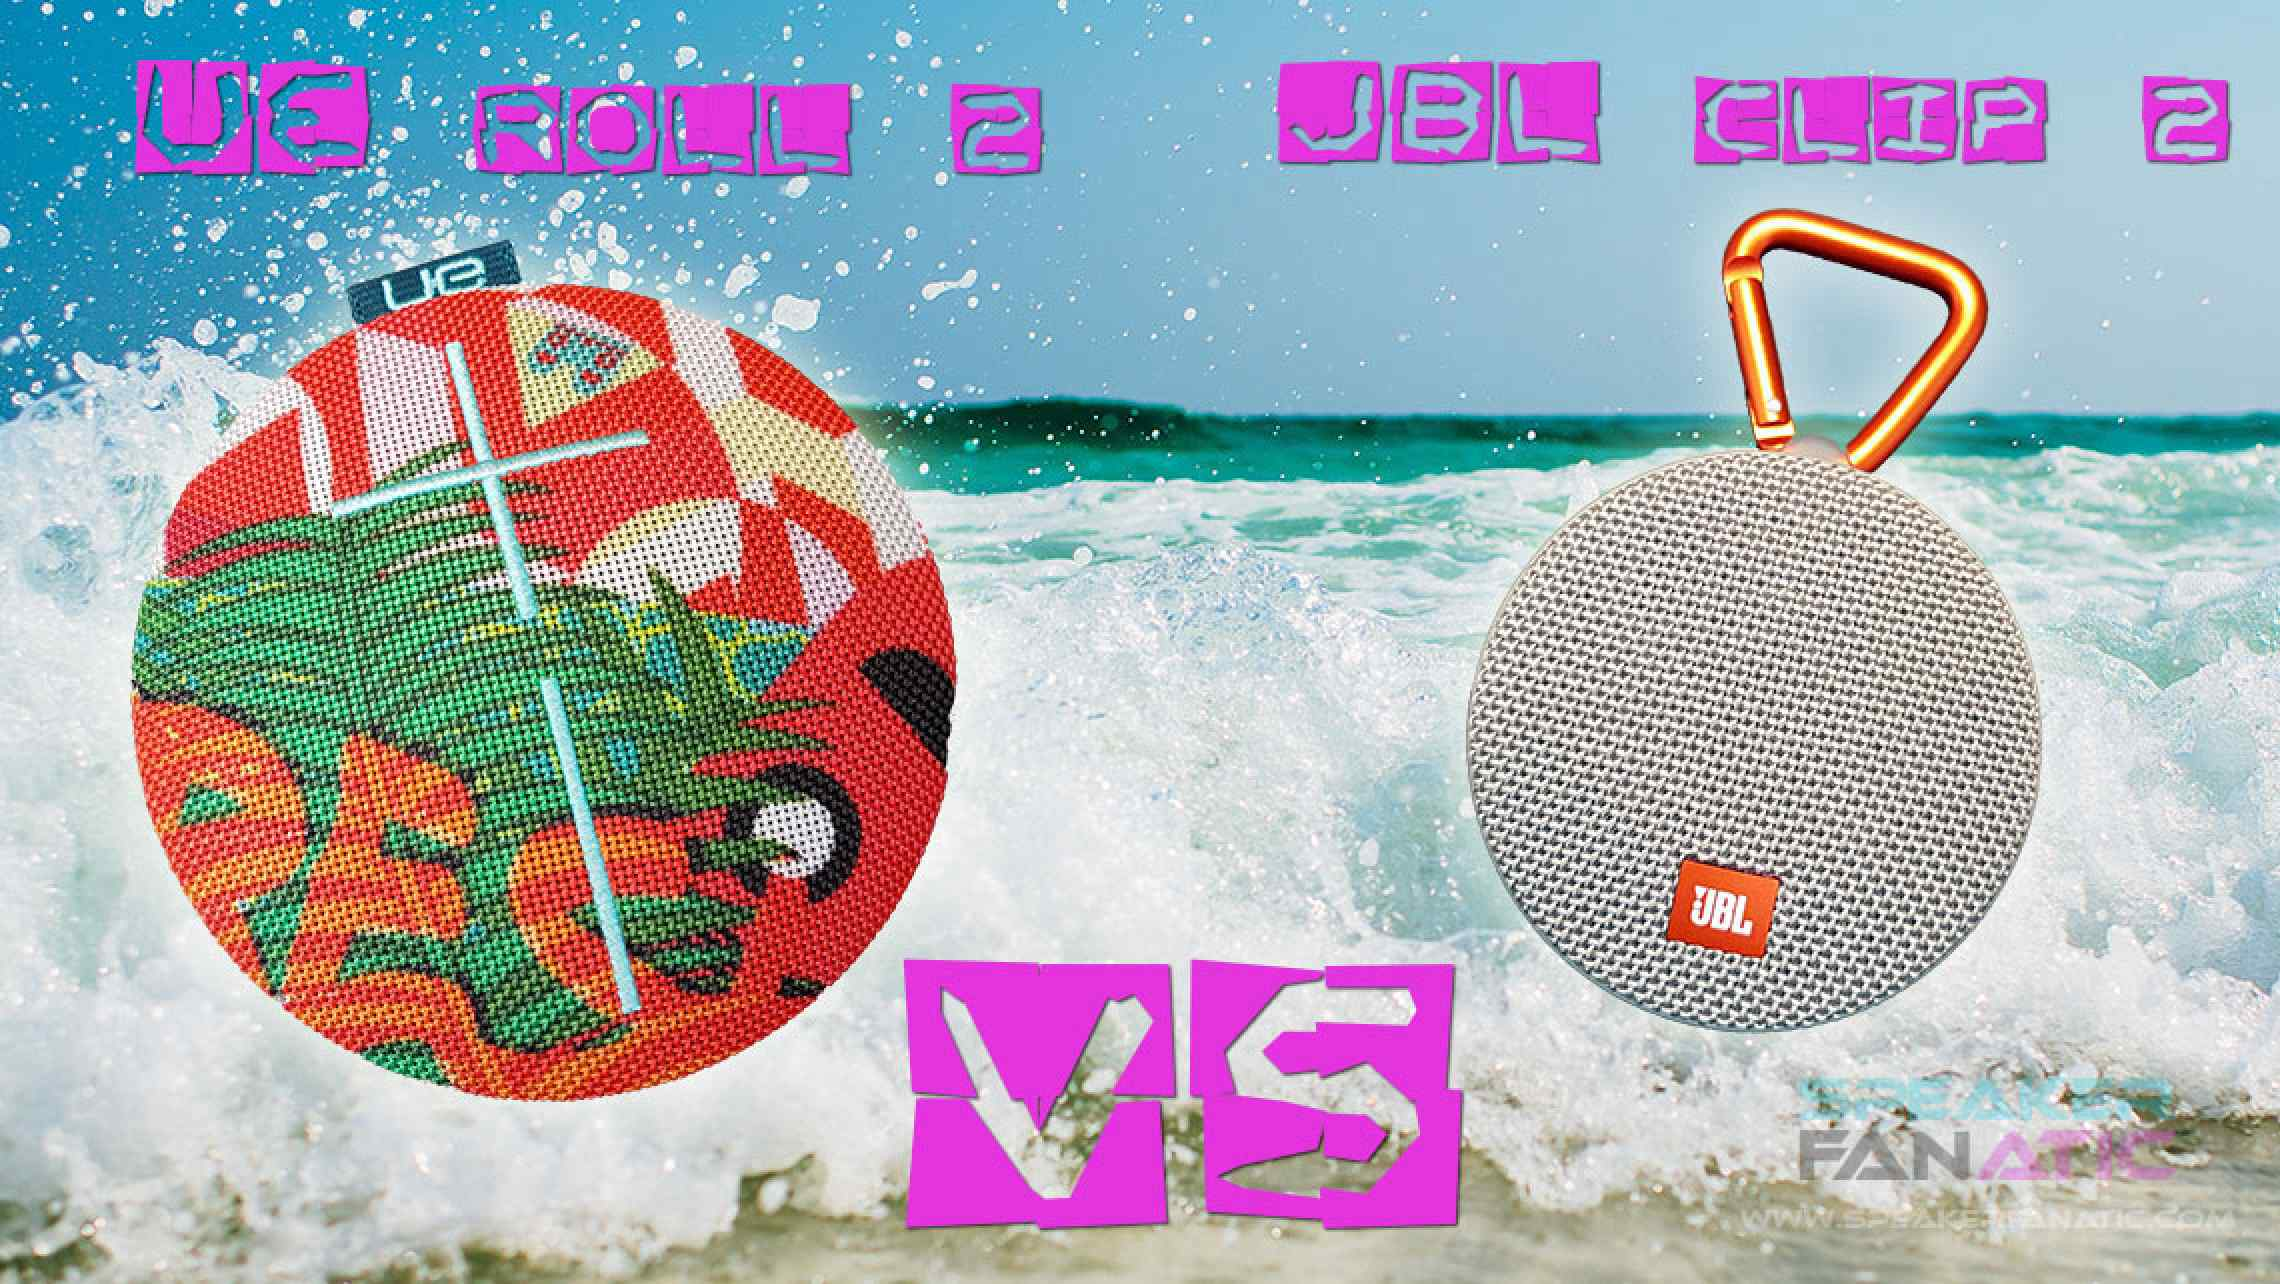 Ue Roll 2 Vs Jbl Clip The Big Comparison Speakerfanatic Bluetooth Speaker Grey If You Want A Which Is Ultra Portable Waterproof And Under 100 Obvious Choice Can Be One Of Speakers Two Popular